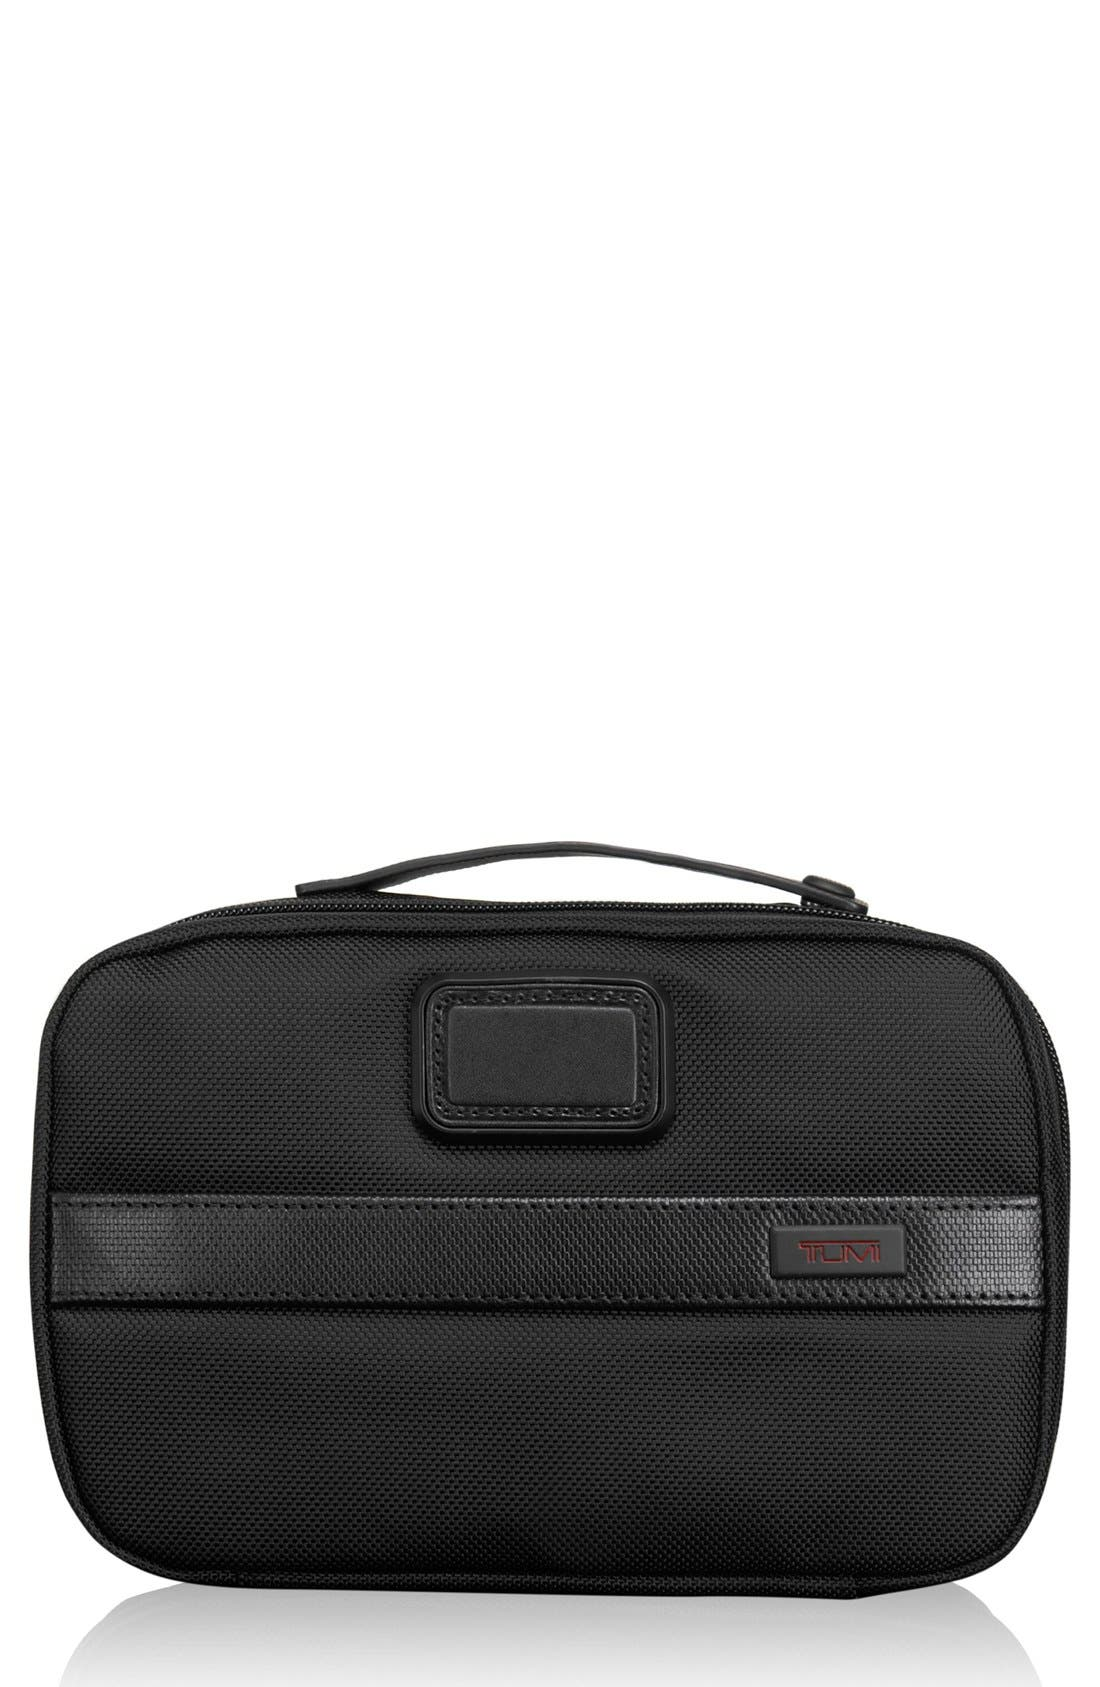 Tumi Backpacks & Luggage | Nordstrom | Nordstrom